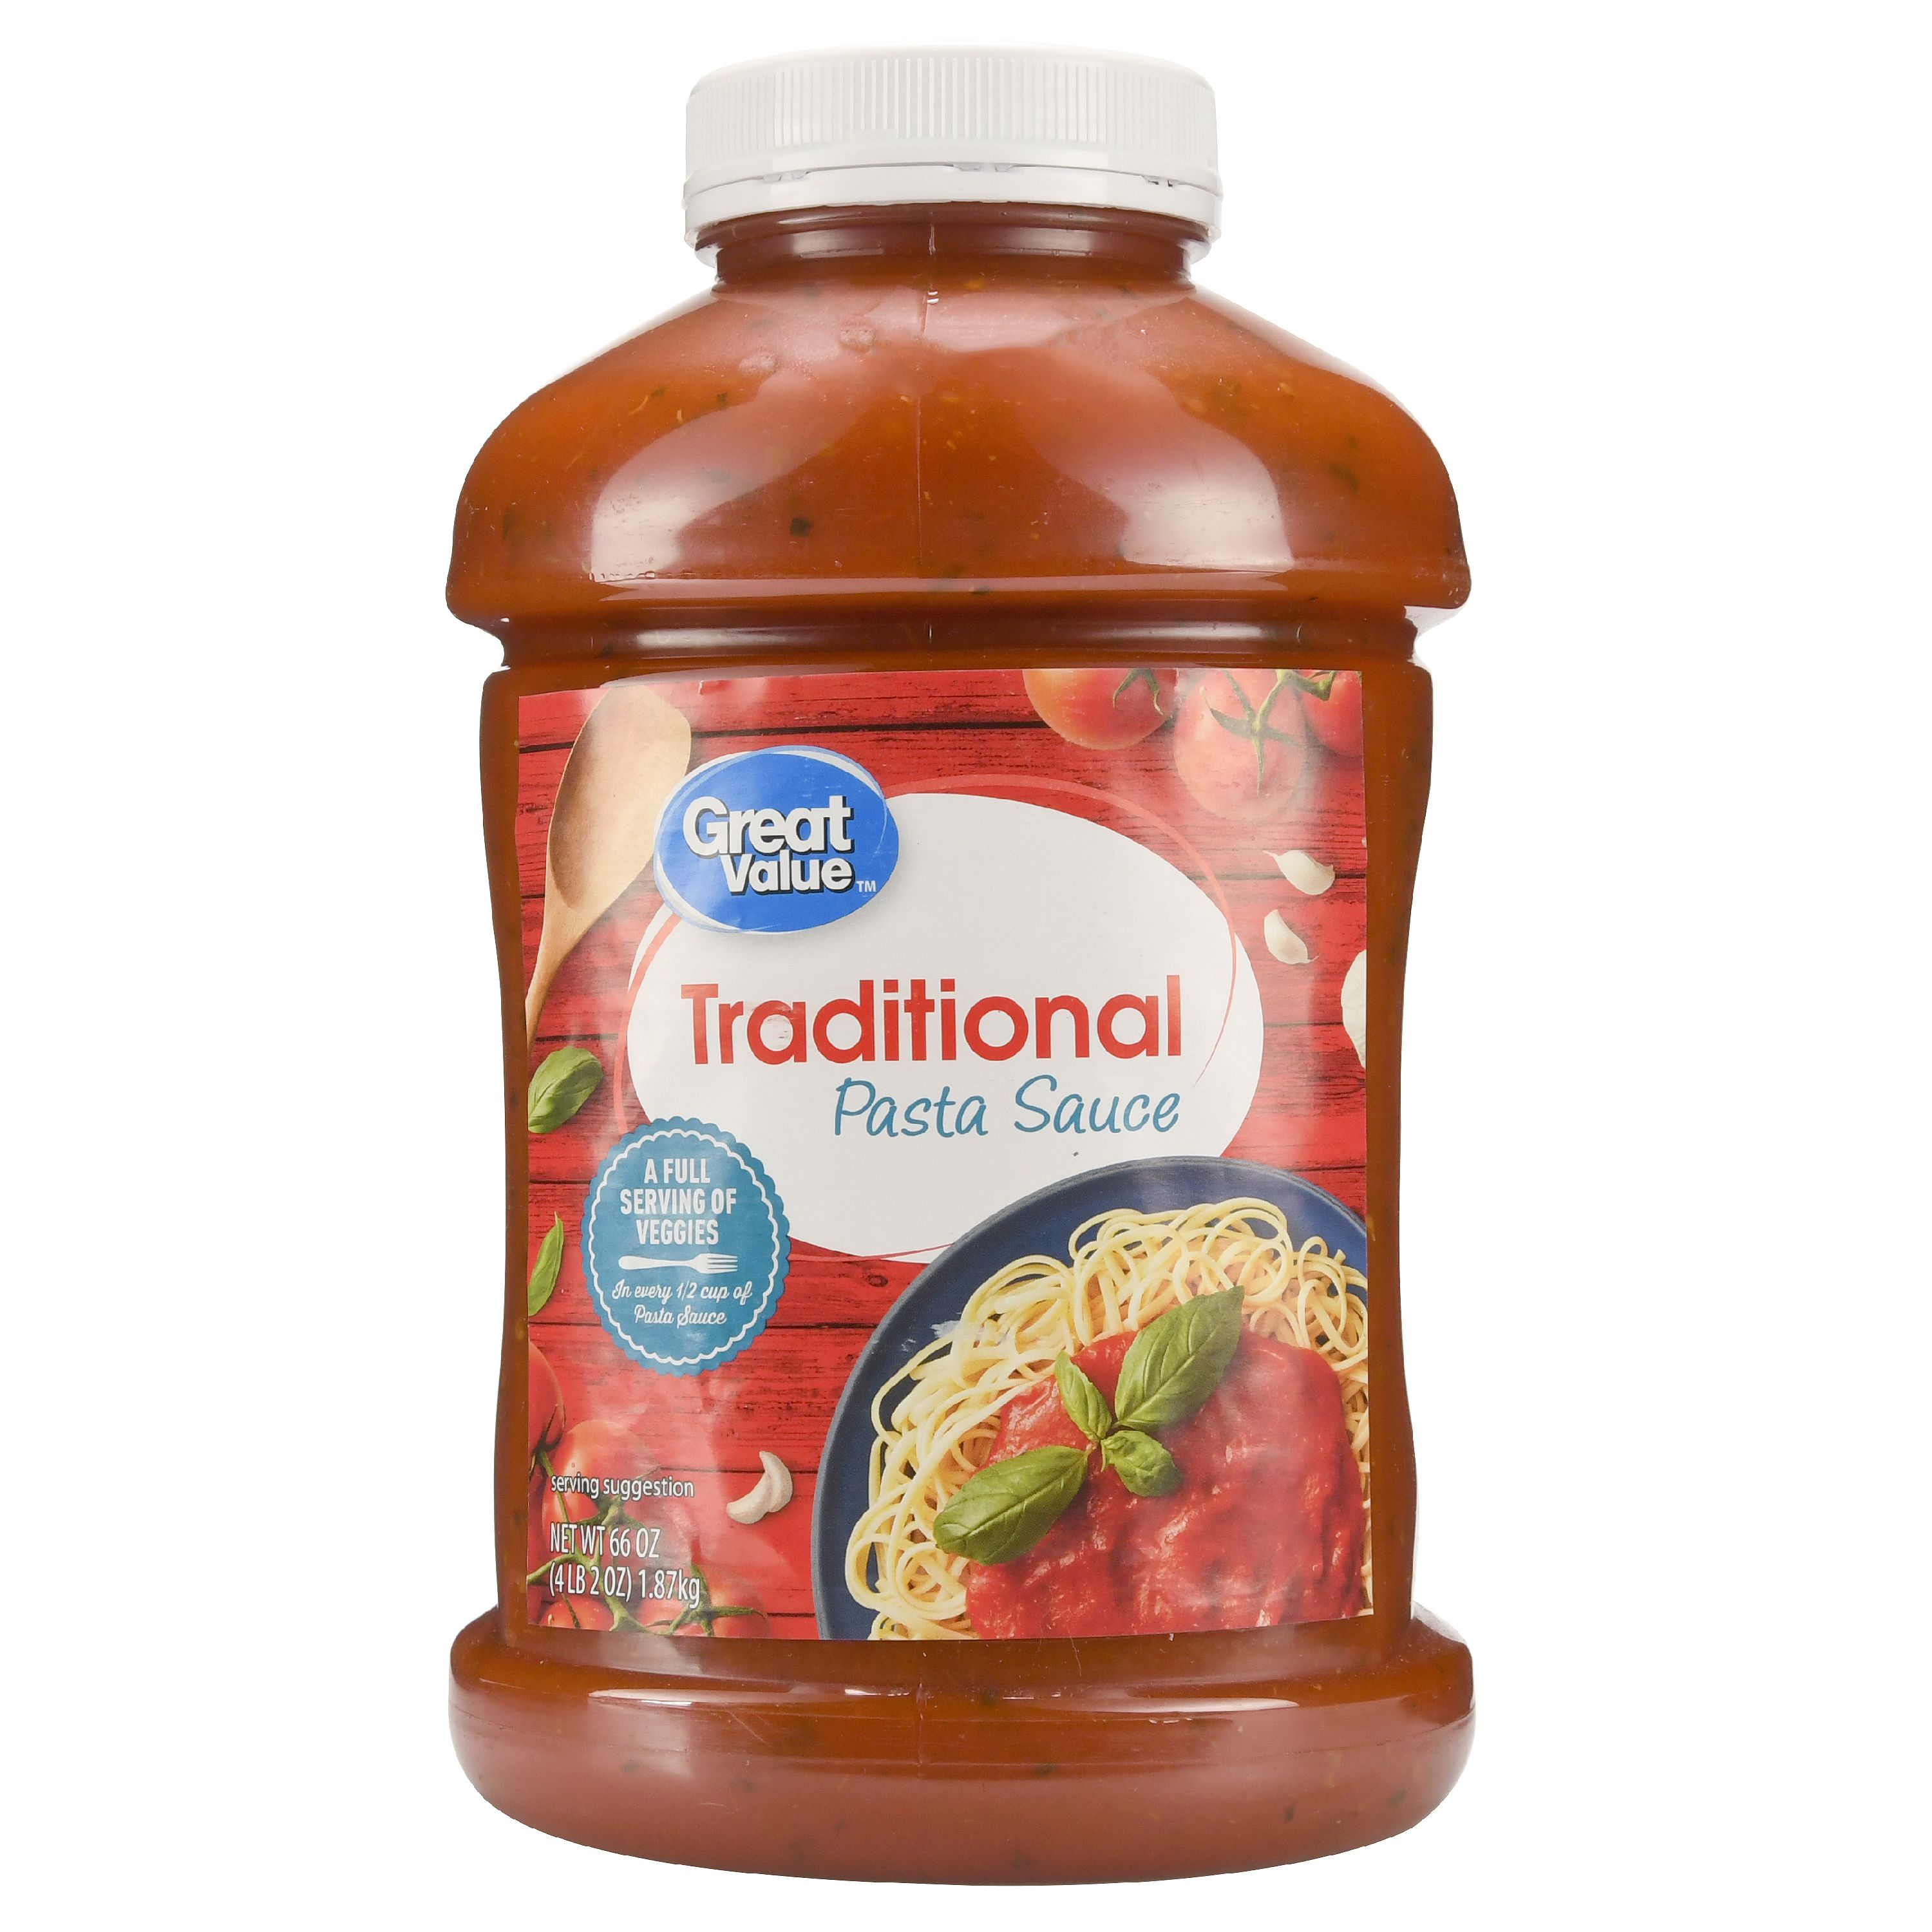 Great Value Traditional Pasta Sauce, 66 oz